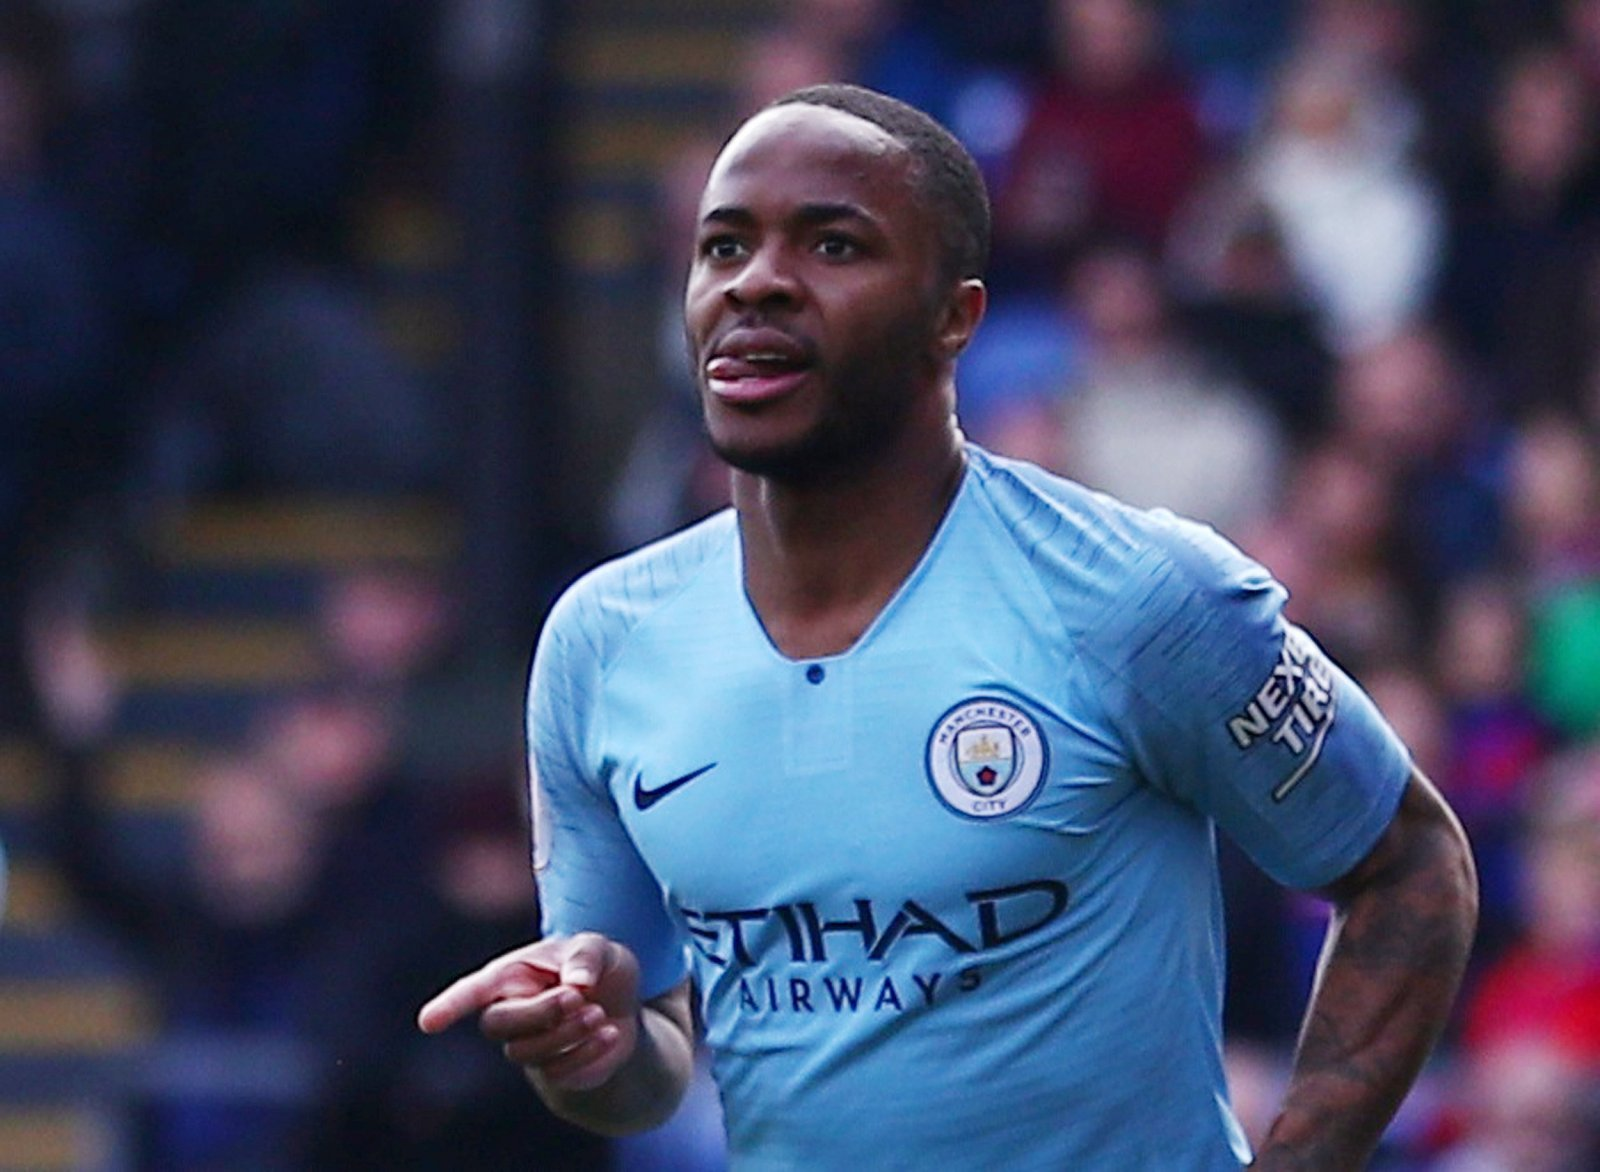 Manchester City: Fans flock to cast their Champions League vote for Raheem Sterling